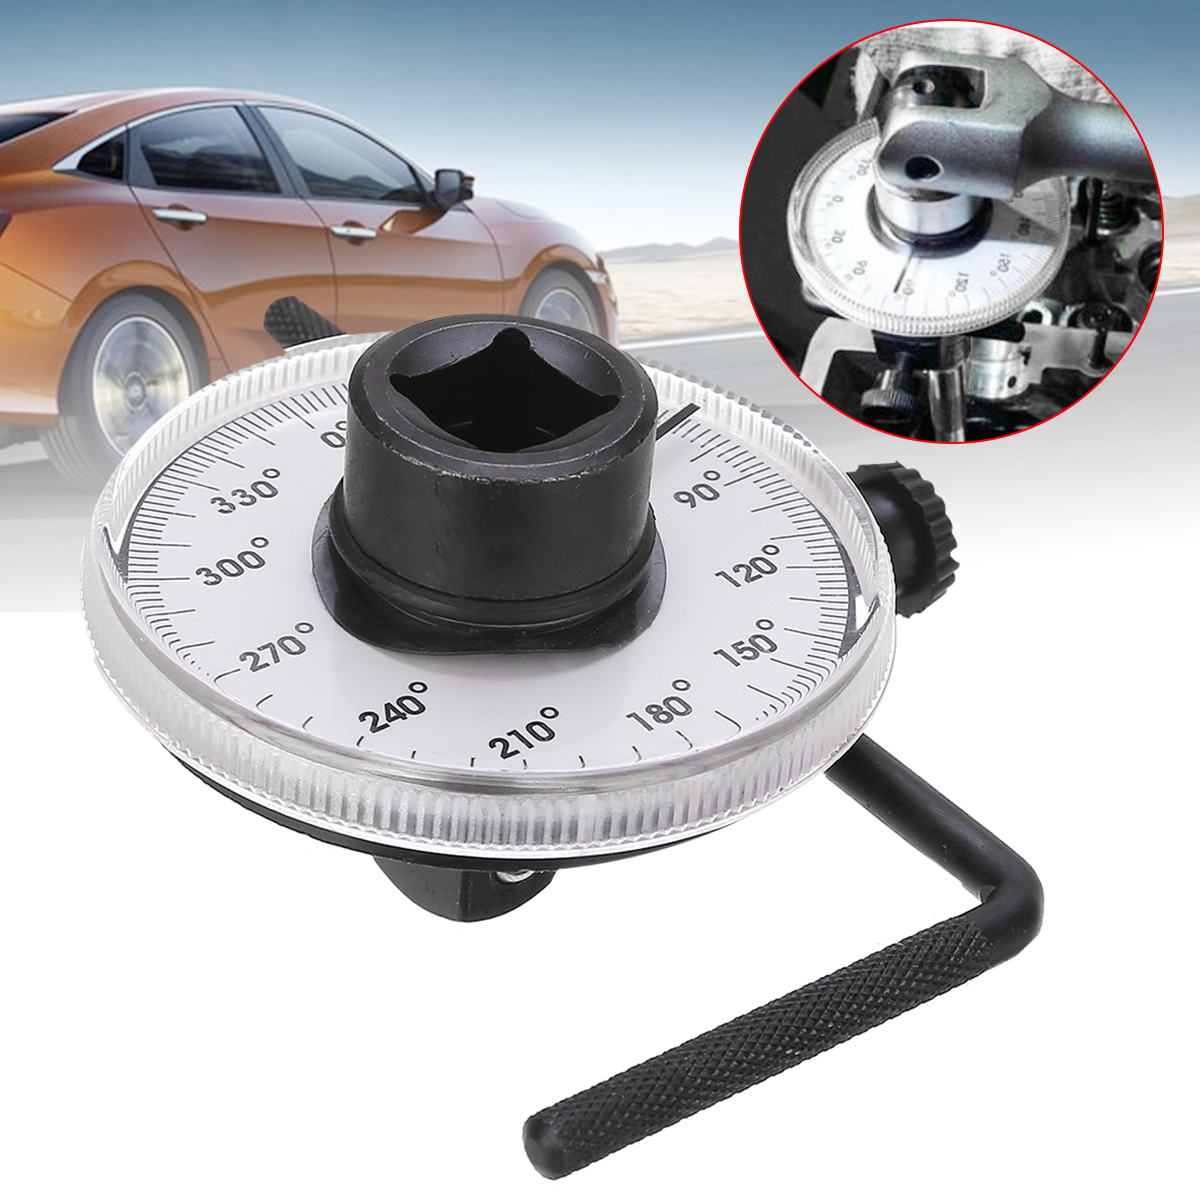 New Arrival 1 Set 1/2 Inch Adjustable Drive Torque Angle Gauge Auto Garage Tool For Hand Tools Wrench